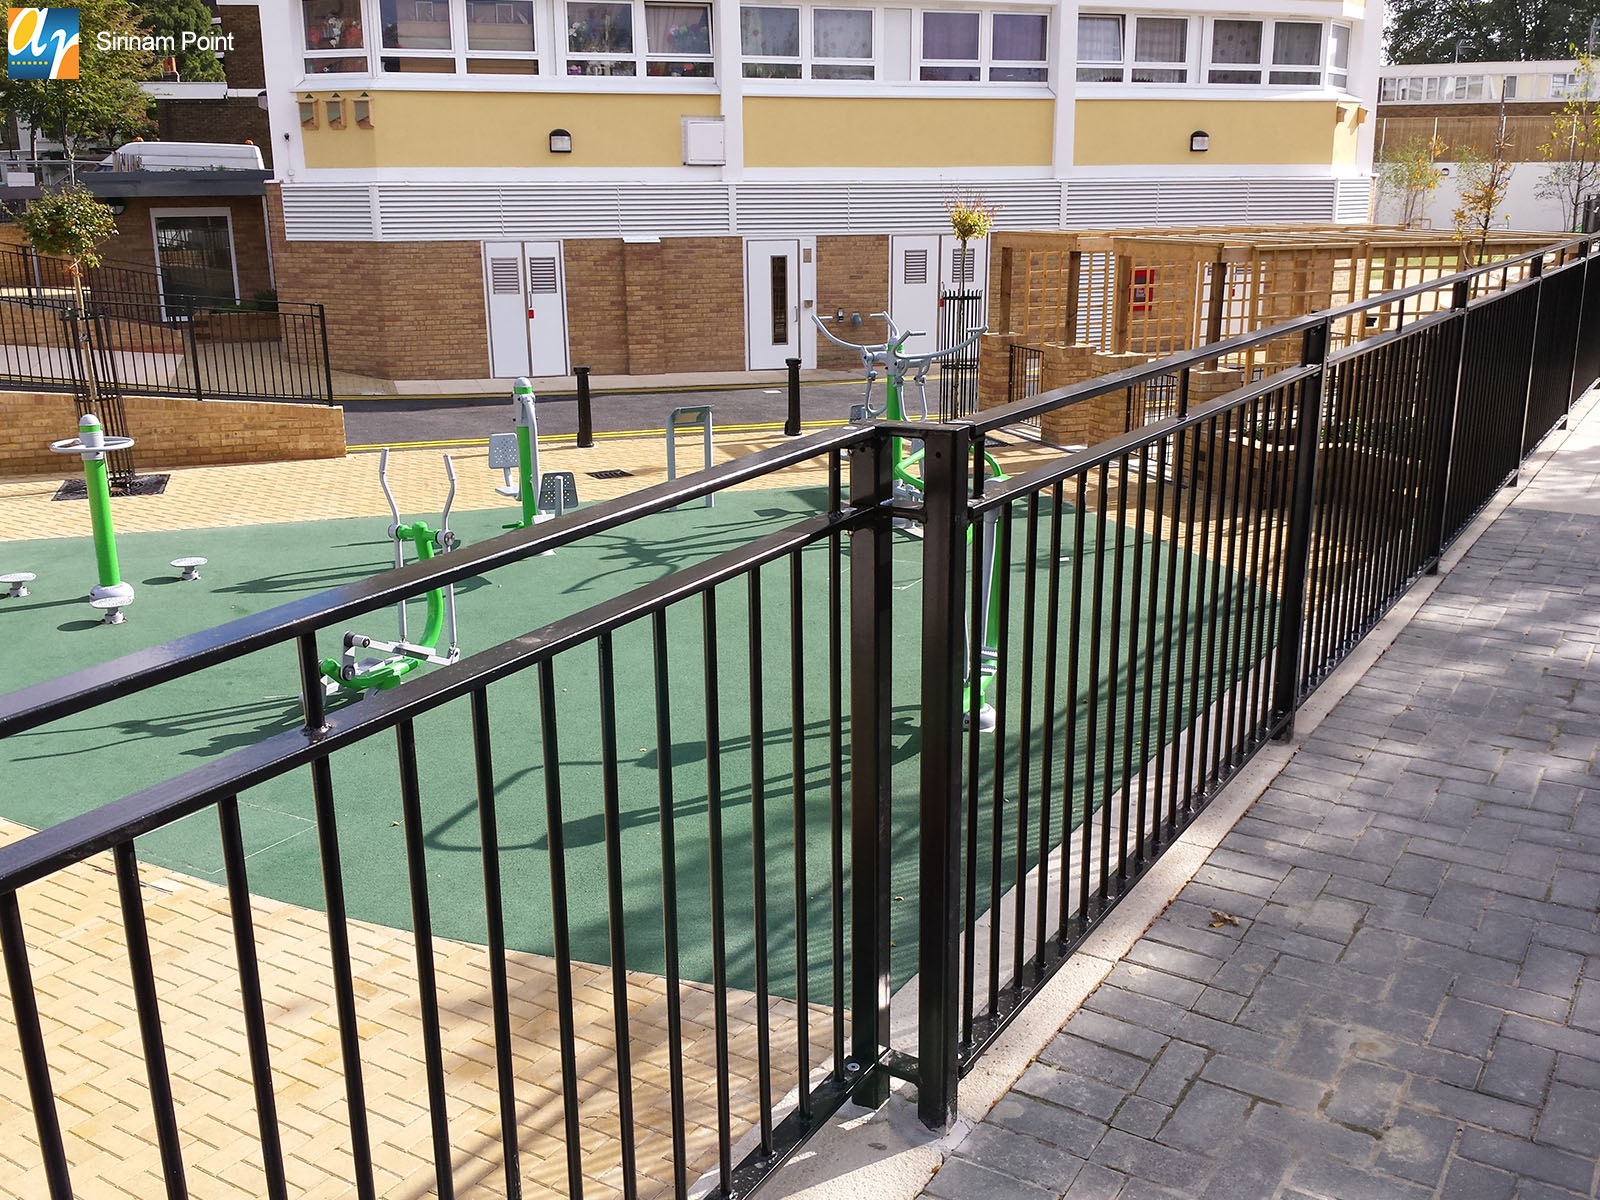 Sirinam Point flat top metal railings